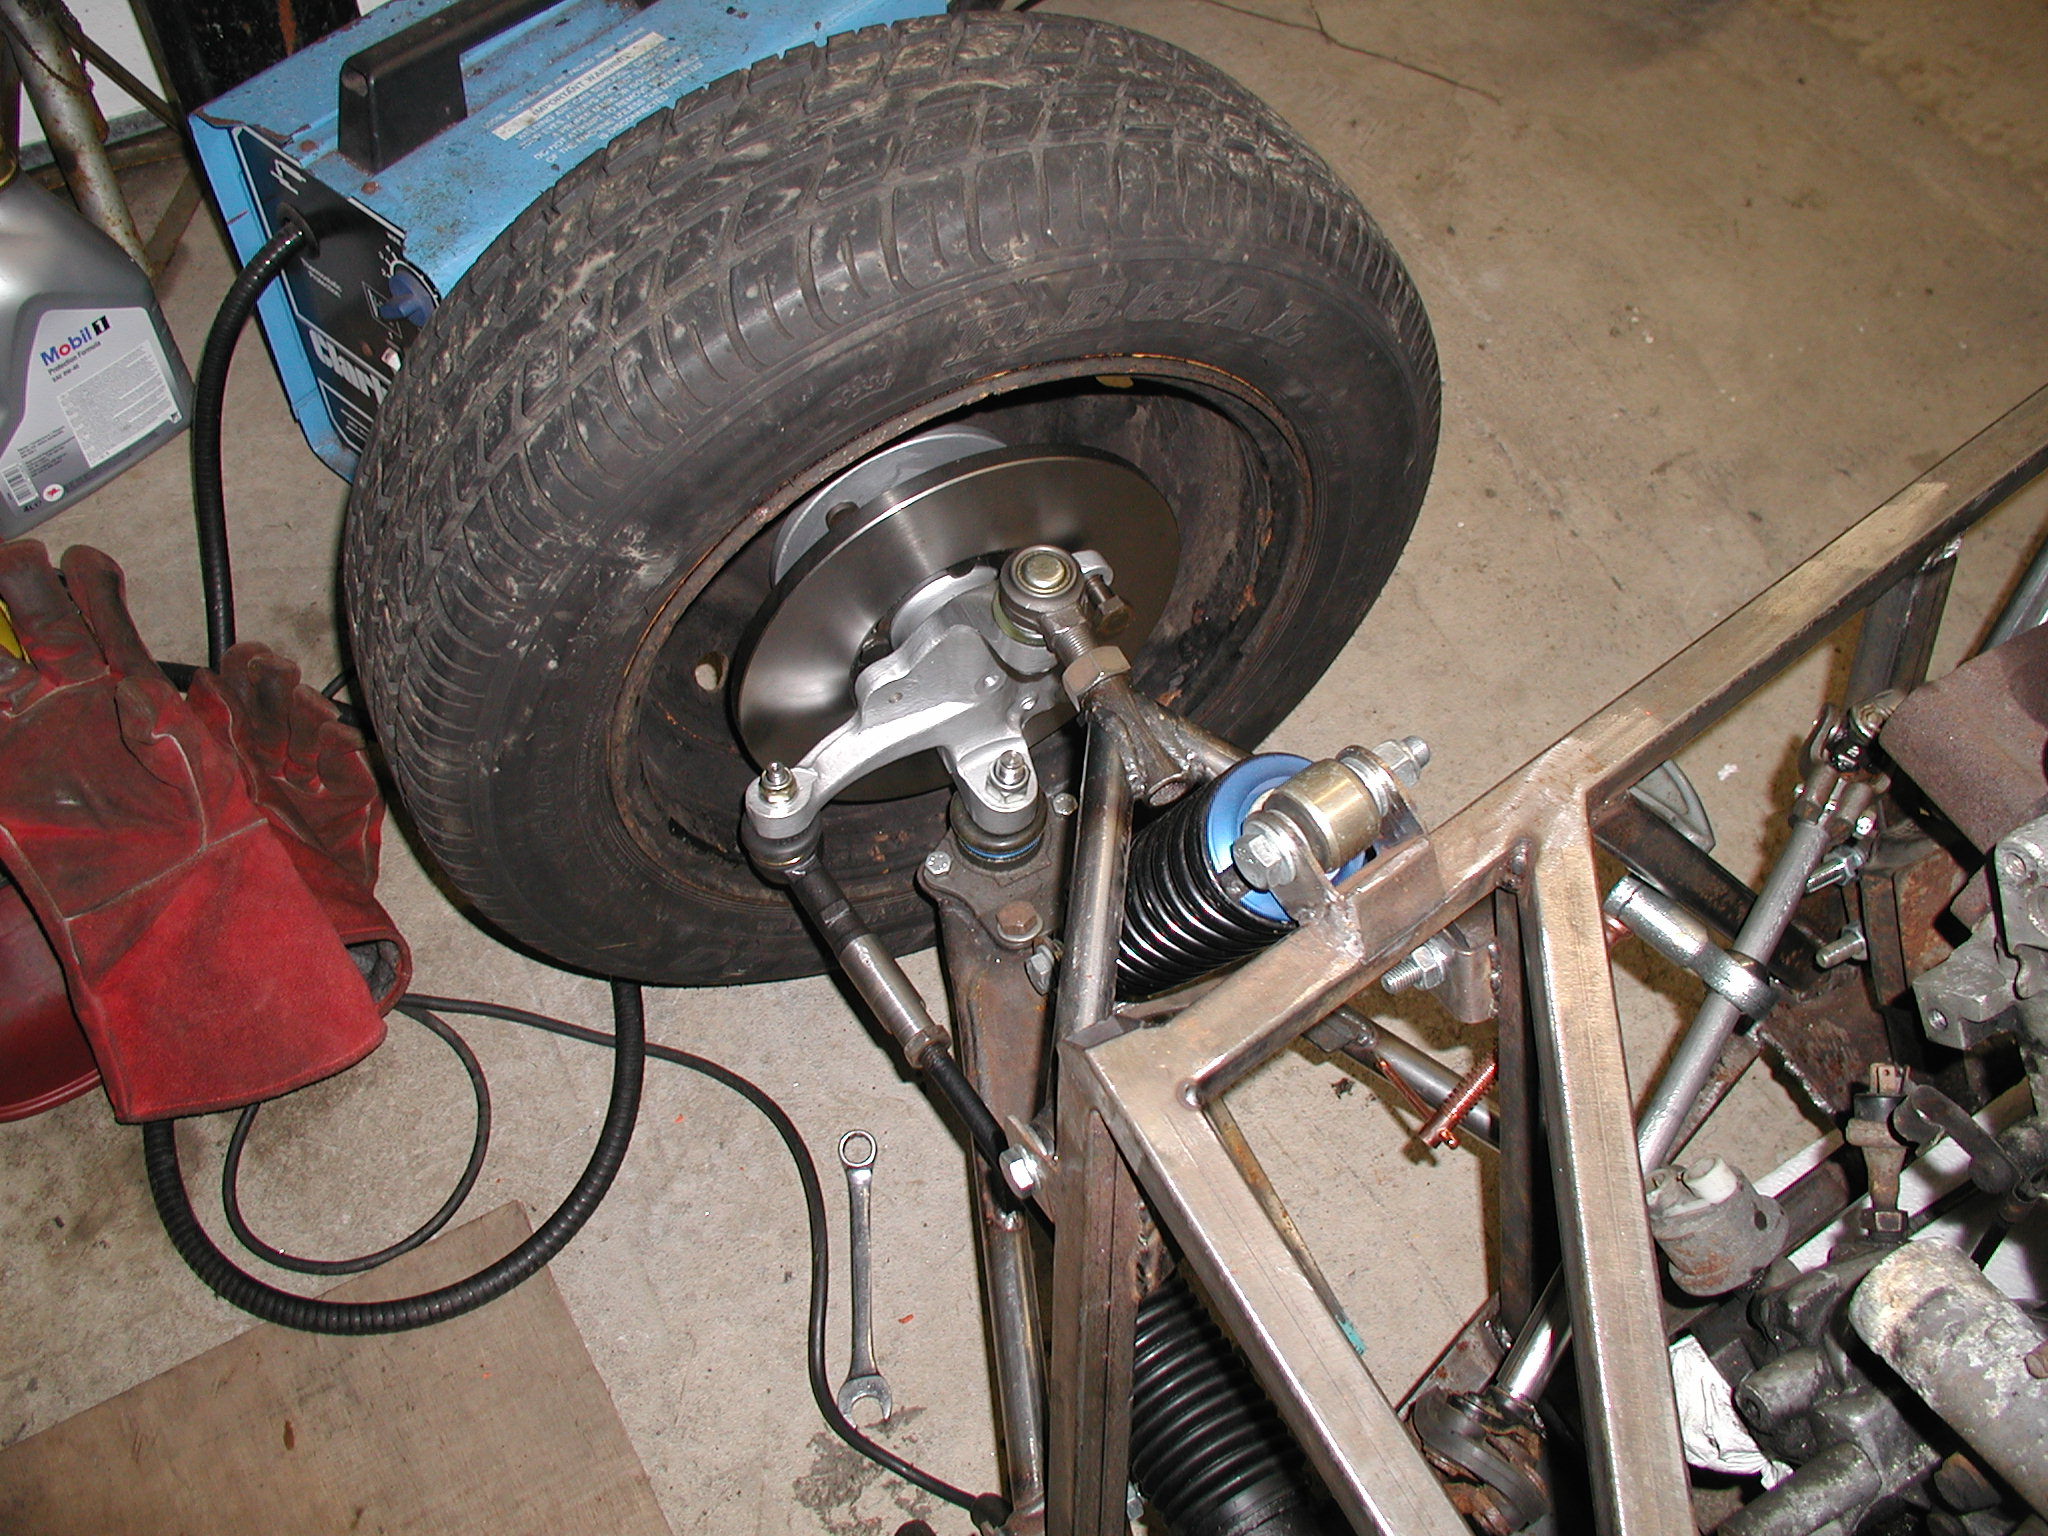 A picture of my offside hub assembly now that it has been reconditioned. New wheel bearings fitted, new disc fitted, hub de-rusted and painted. I used the electrolysis process to remove the rust and this was extremely effective. I'll write more about this at a later date.